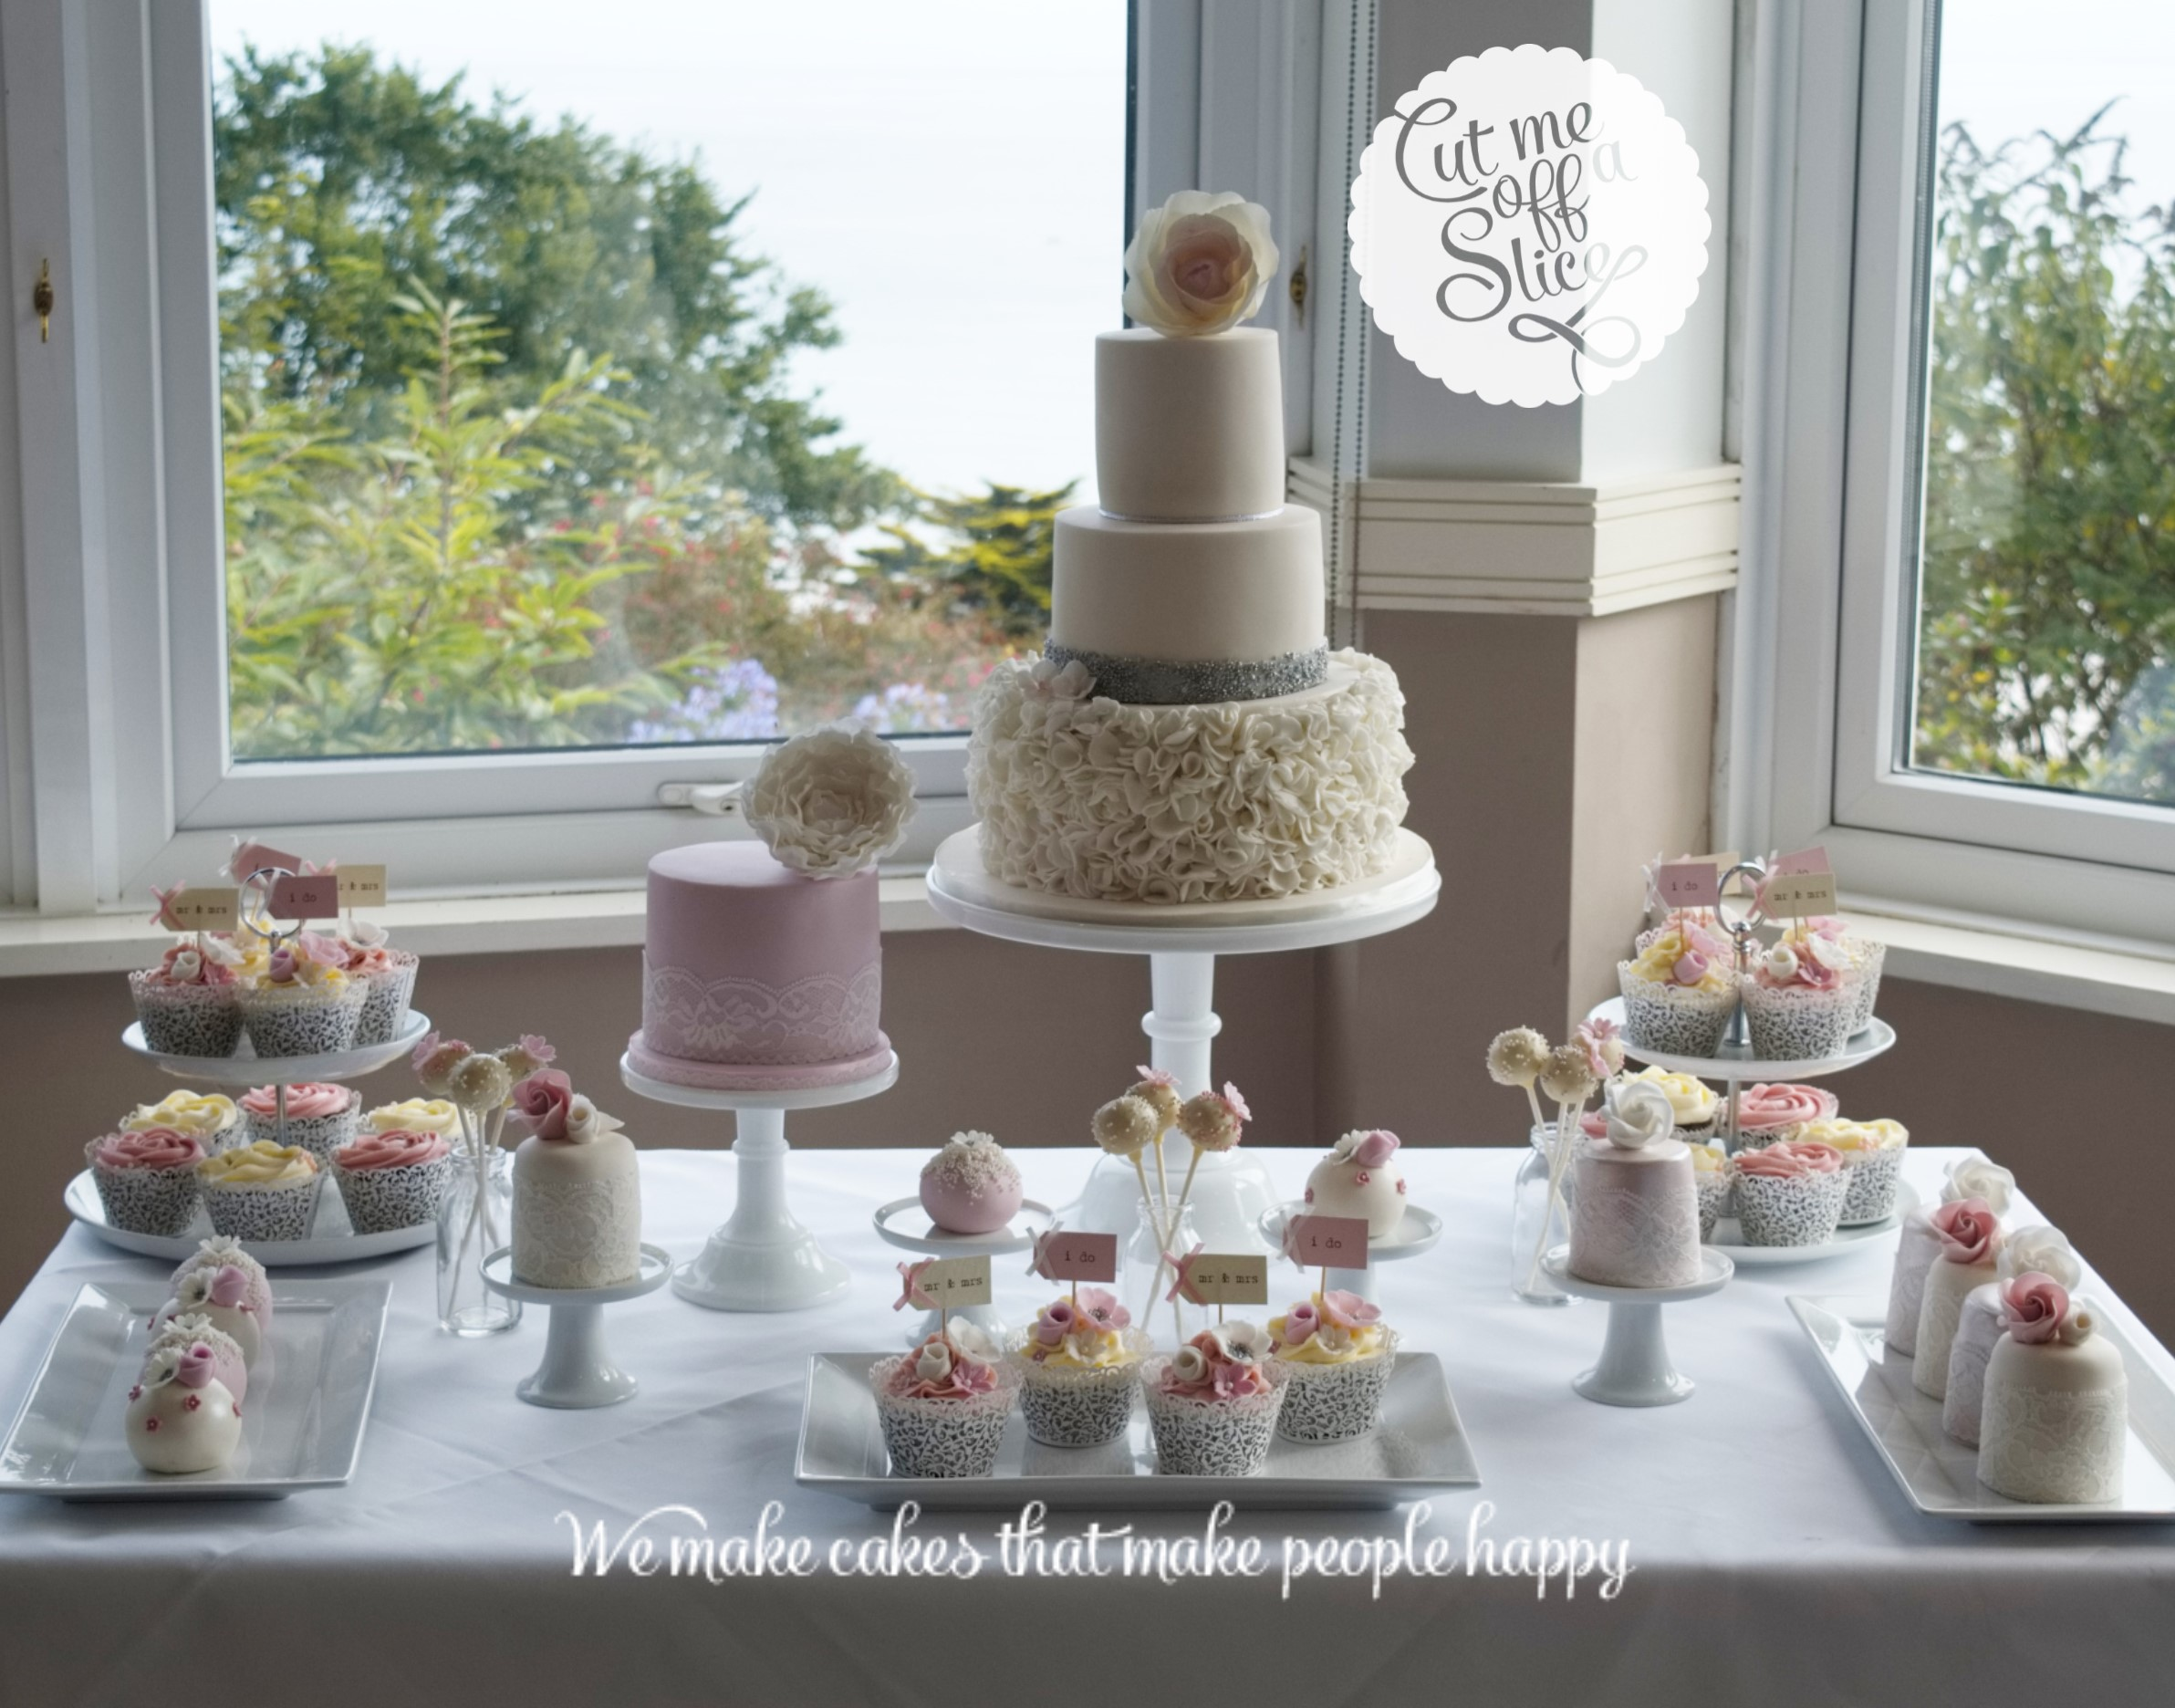 Cake Tables Wedding Cakes Cut Me Off A Slice The Cake Makers - Sphere Wedding Cake